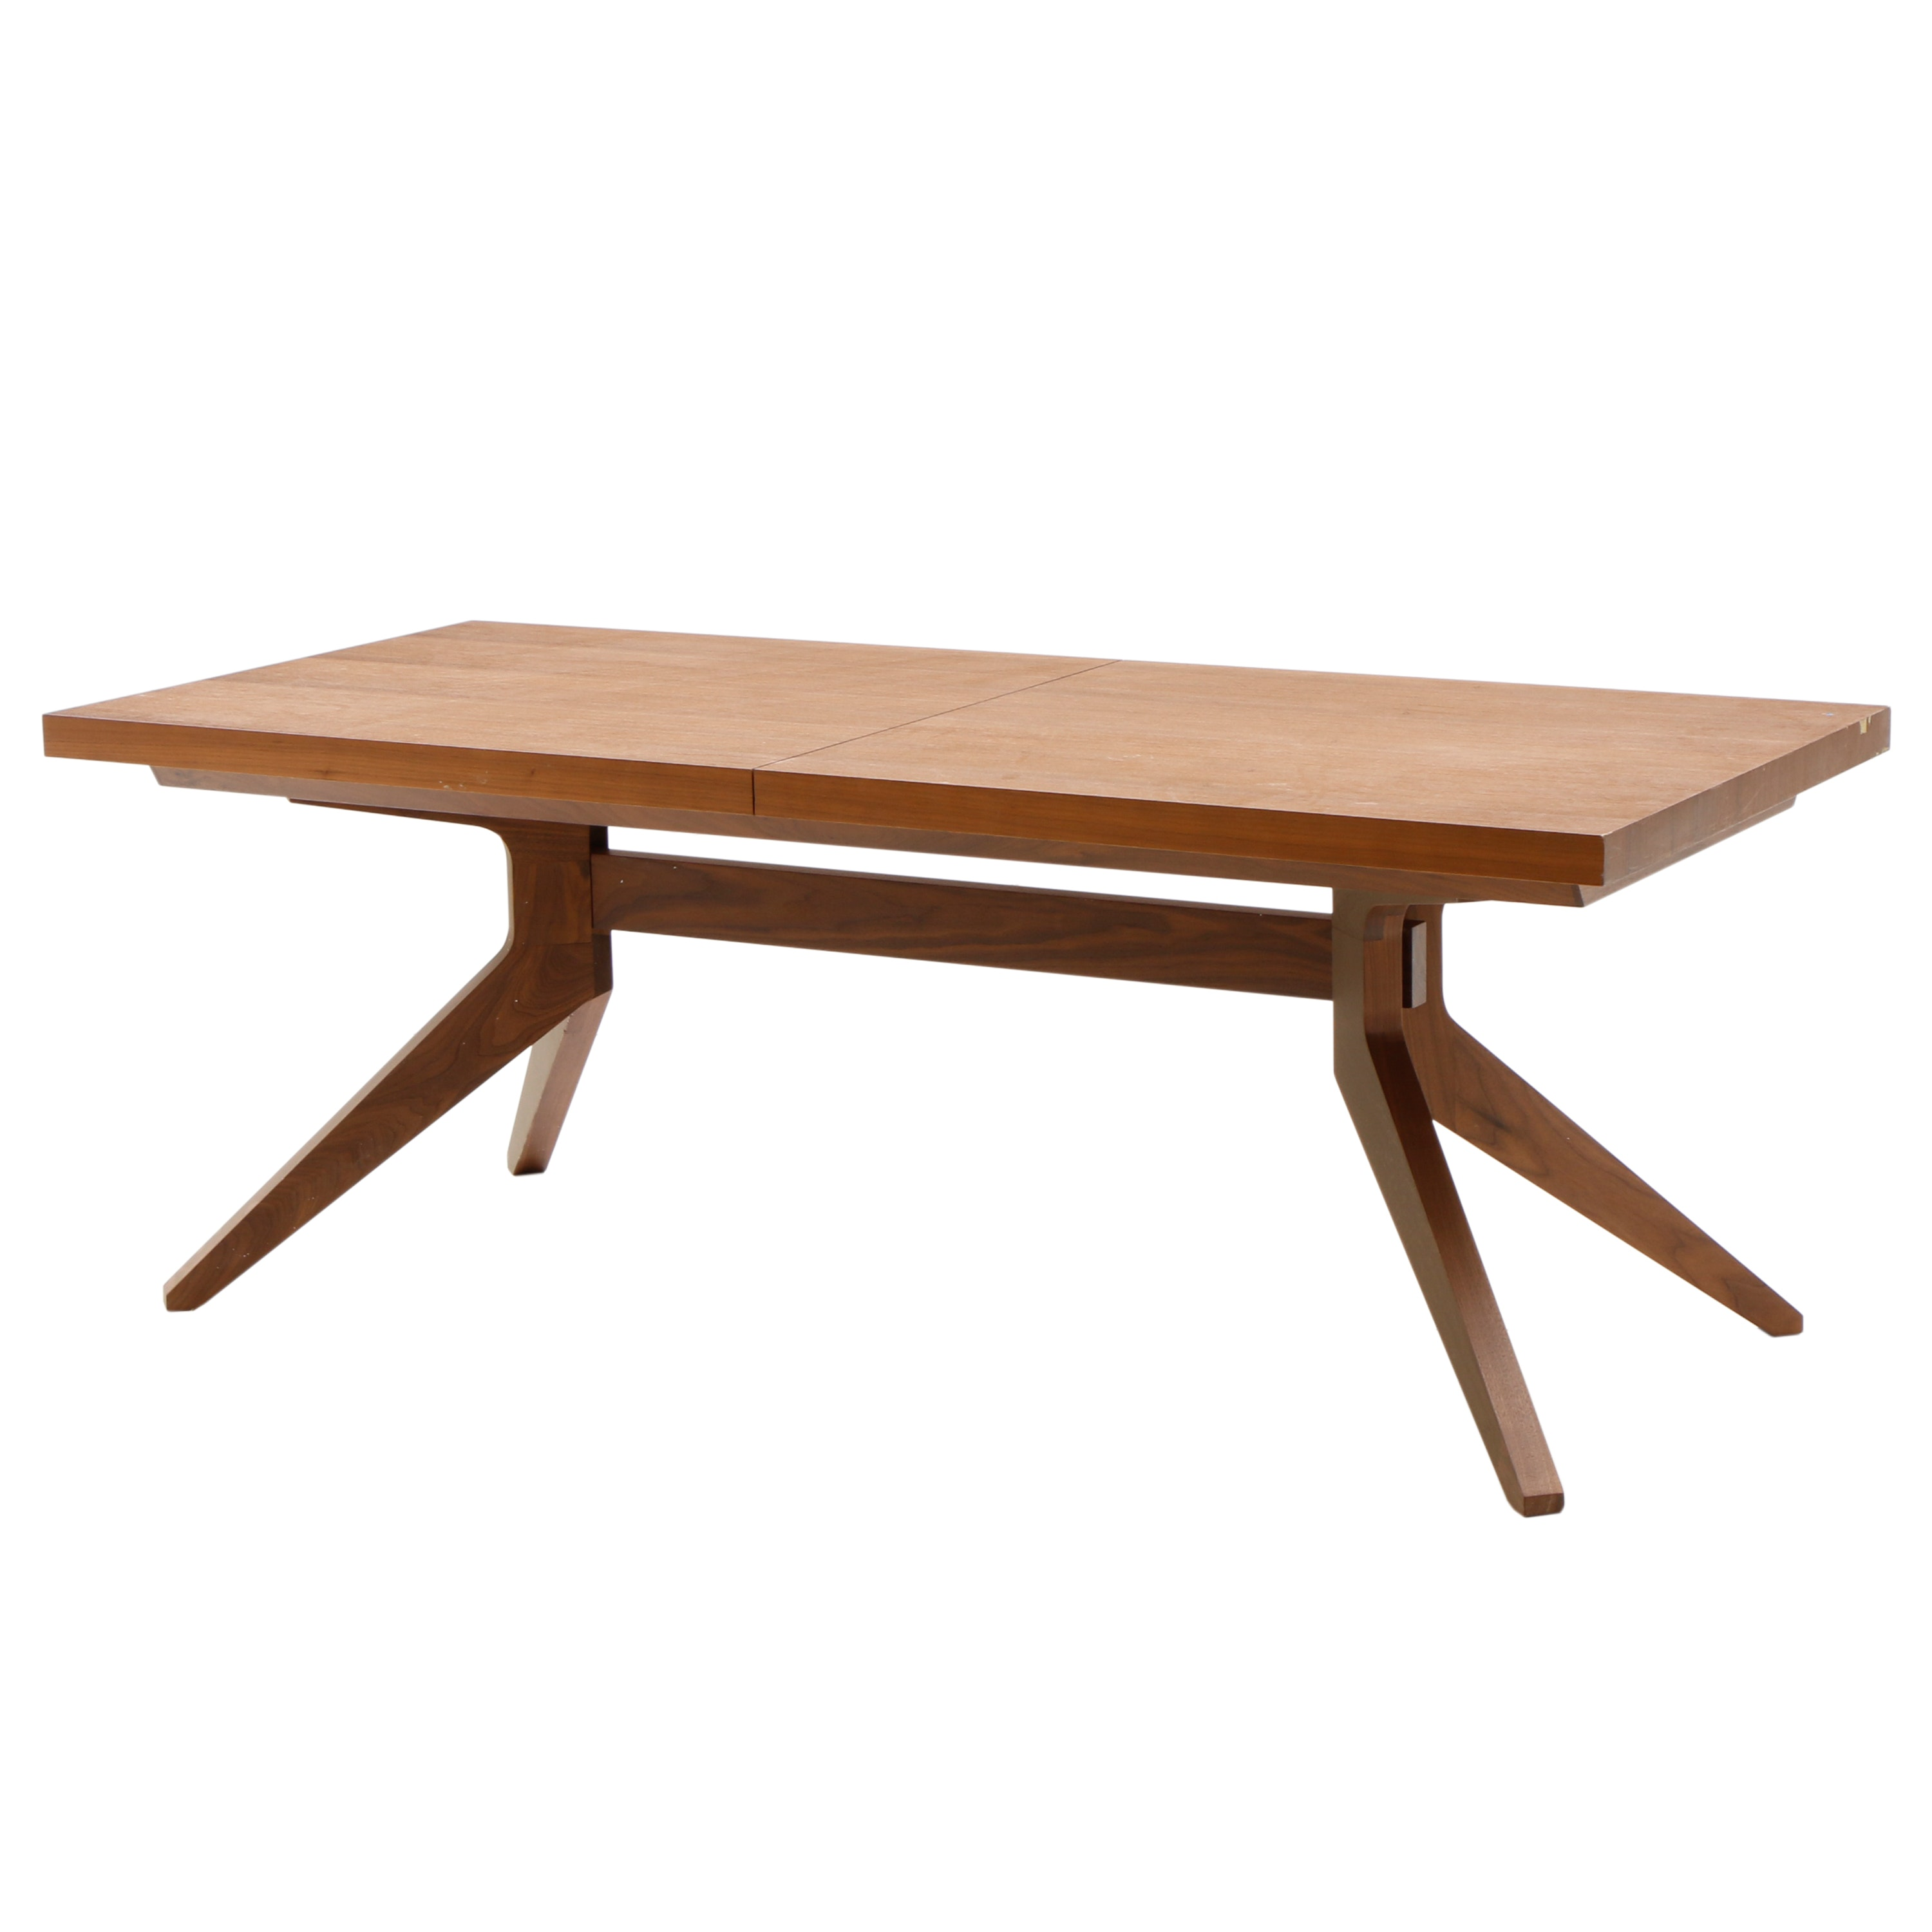 Matthew Hilton for Case Dining Table